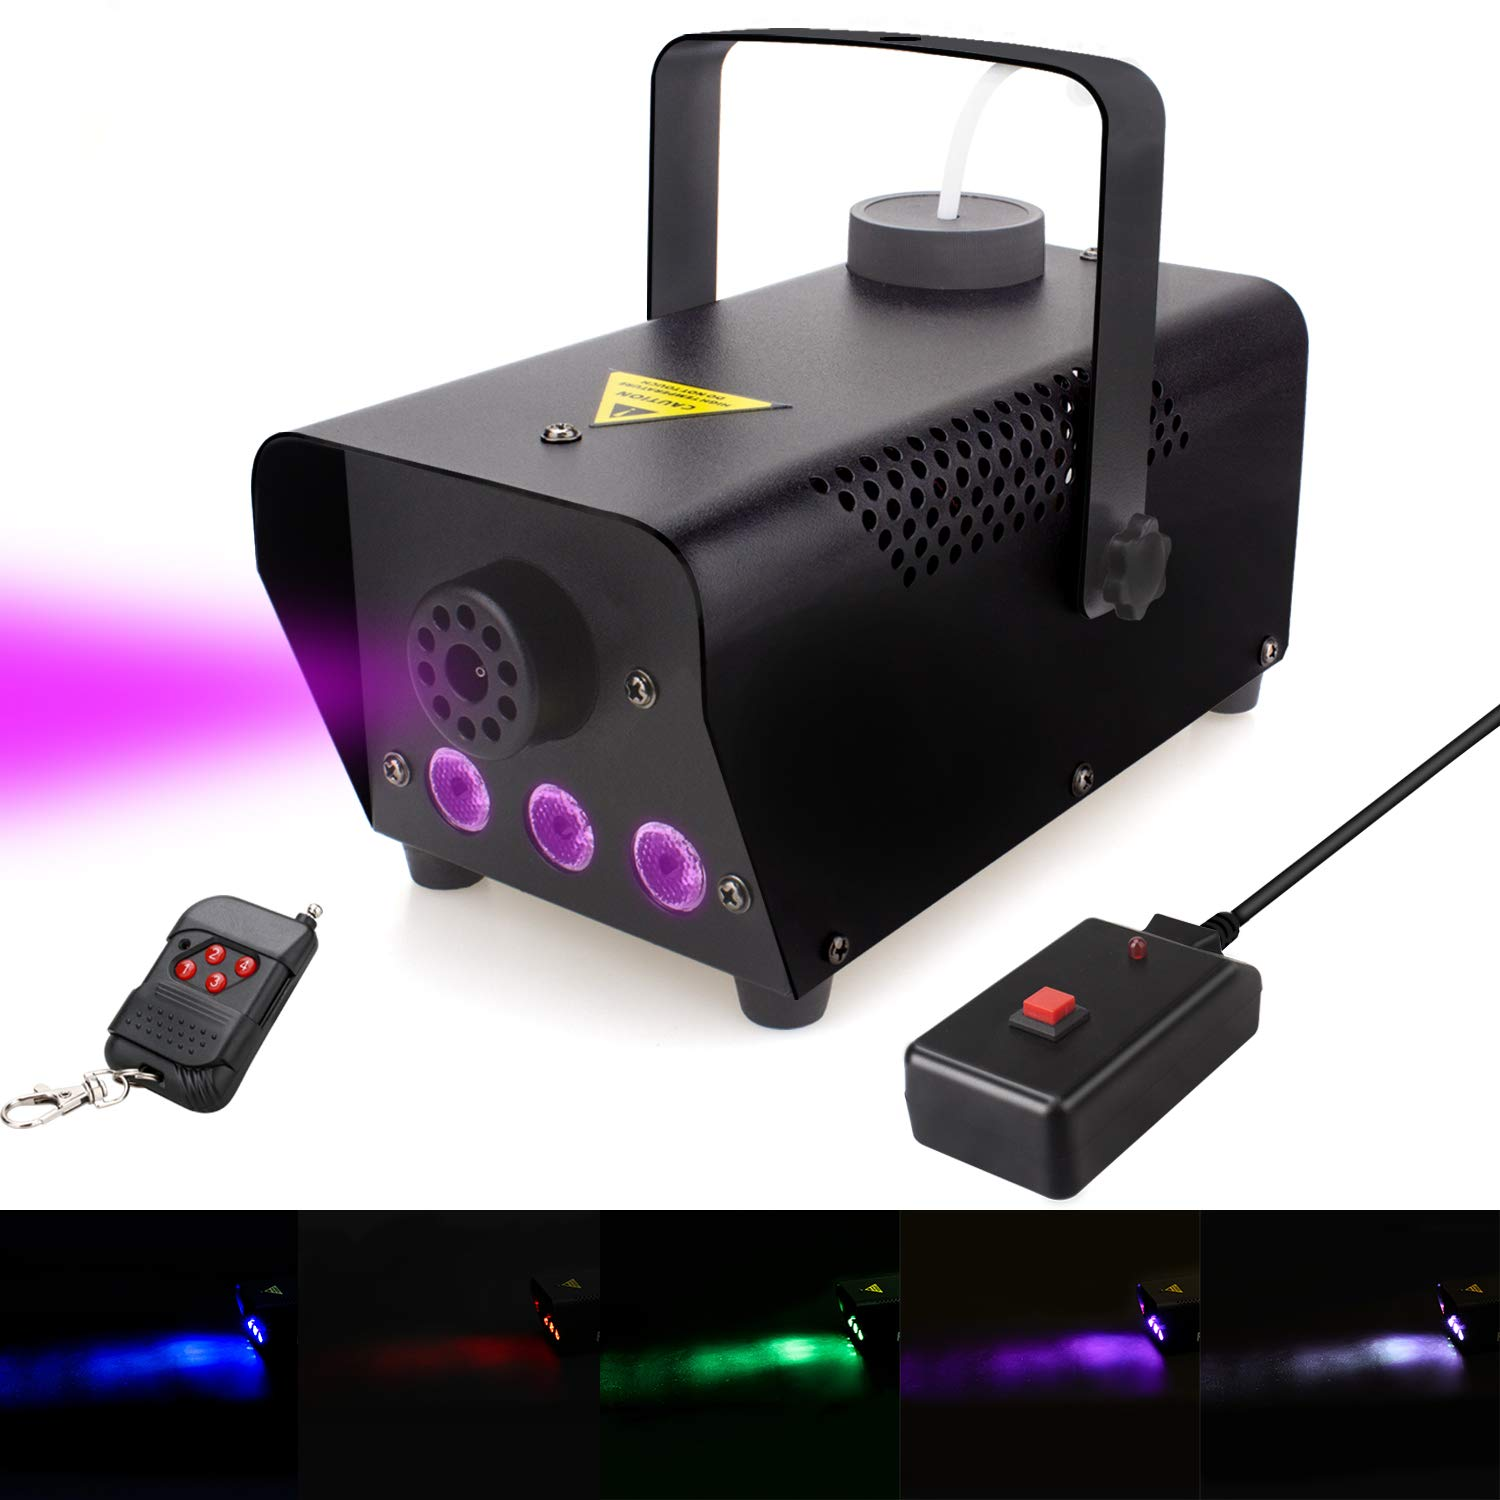 Fog Machine with lights, 400-Watt Portable Fog Machine with Wireless Remote Control, Smoke Machines for Parties Halloween Wedding Christmas DJ Dance Luditek